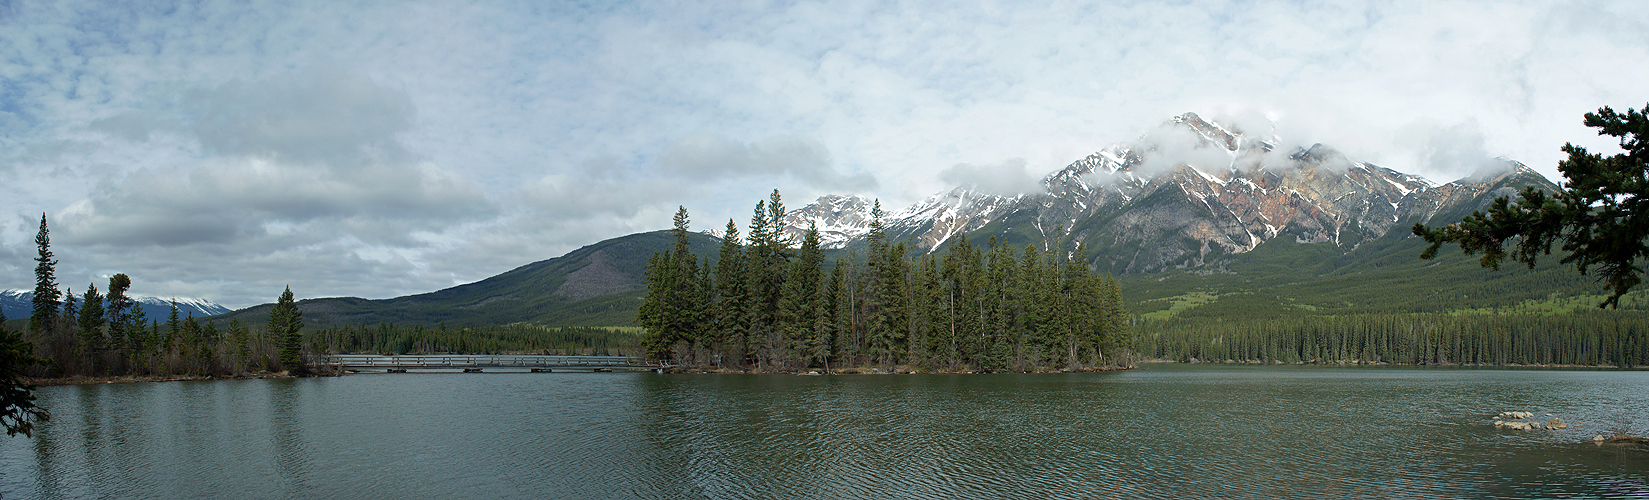 Photo panoramique du lac Pyramide (Jasper)